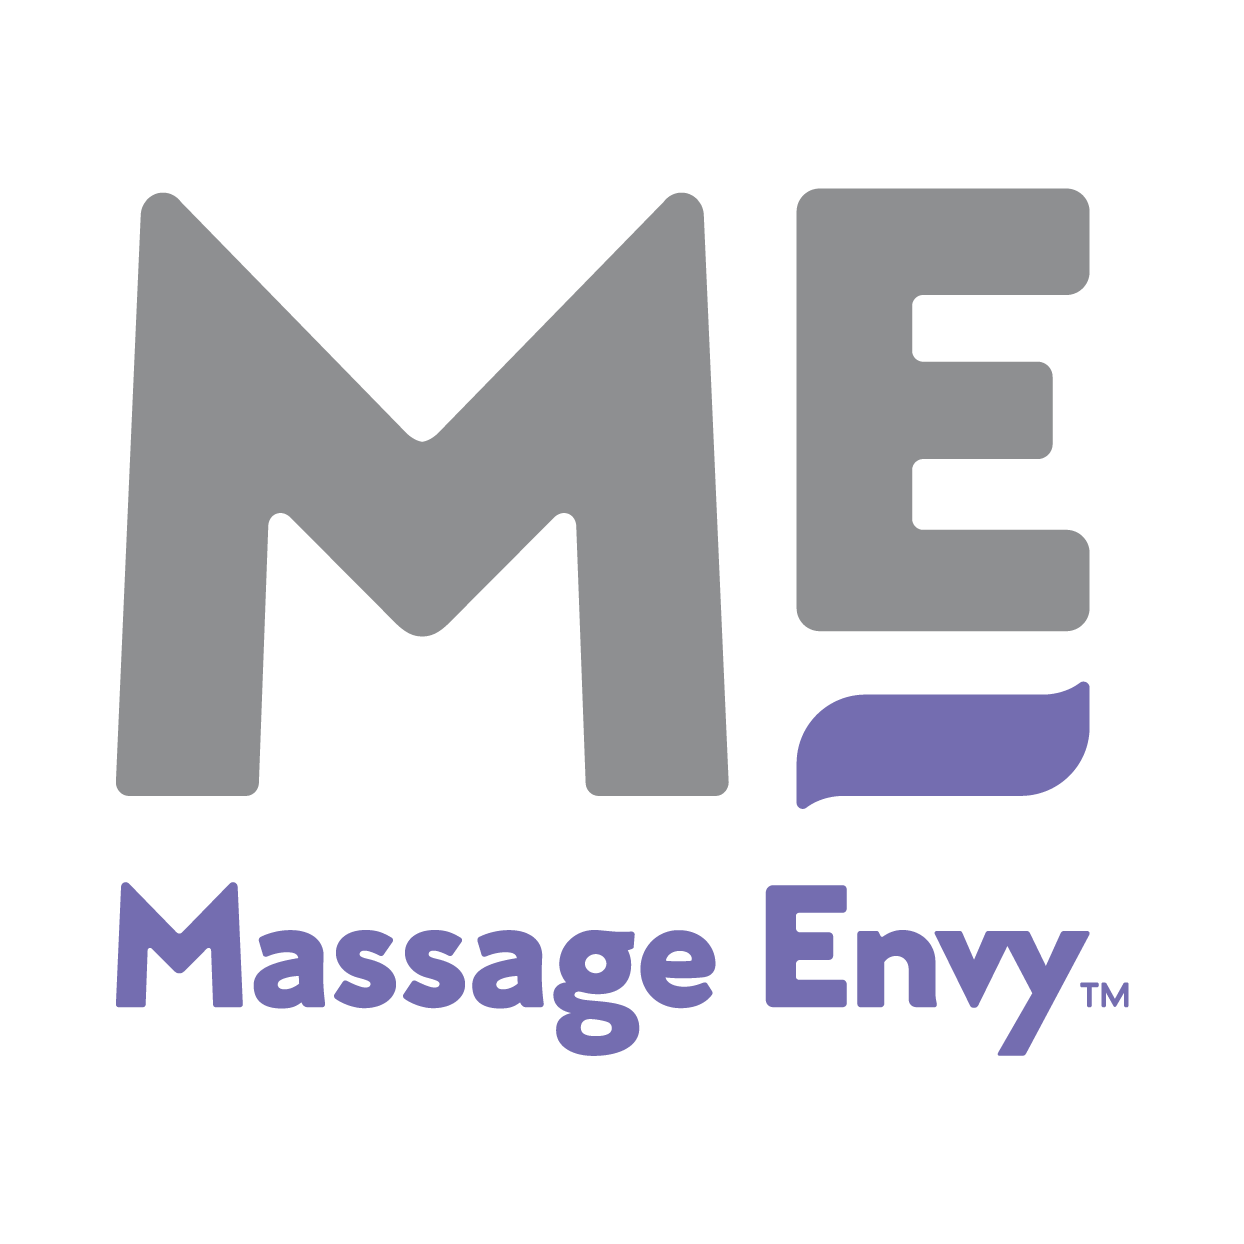 Massage Therapist in IN Valparaiso 46383 Massage Envy - Valparaiso 300 Porter's Vale Blvd Suite 110 (219)476-7474